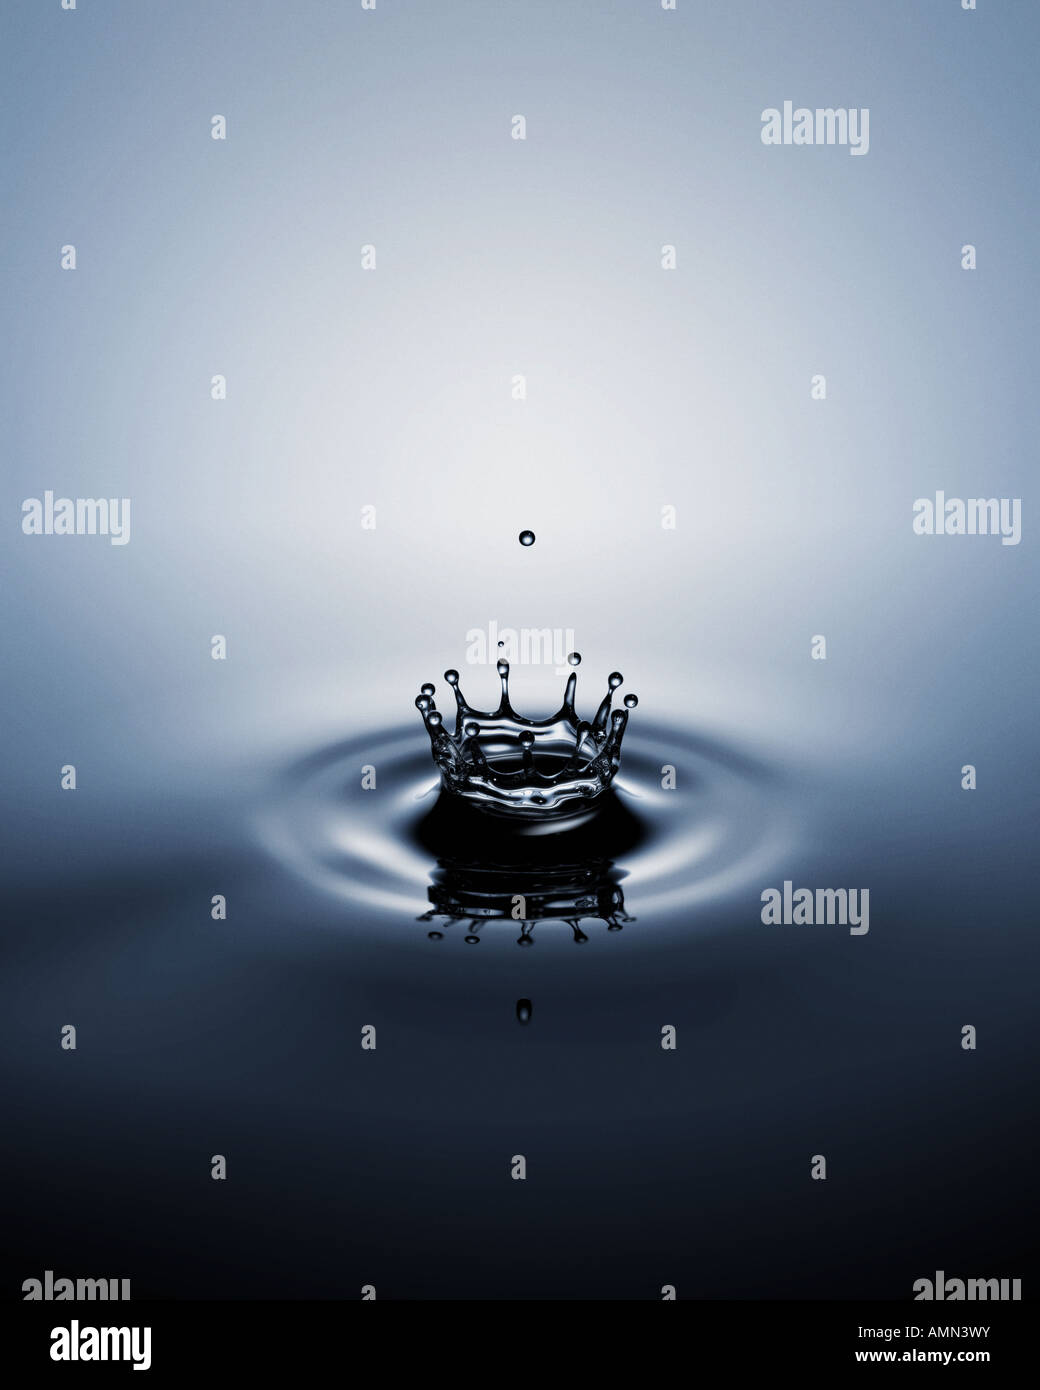 A ripple of water in a crown shape - Stock Image